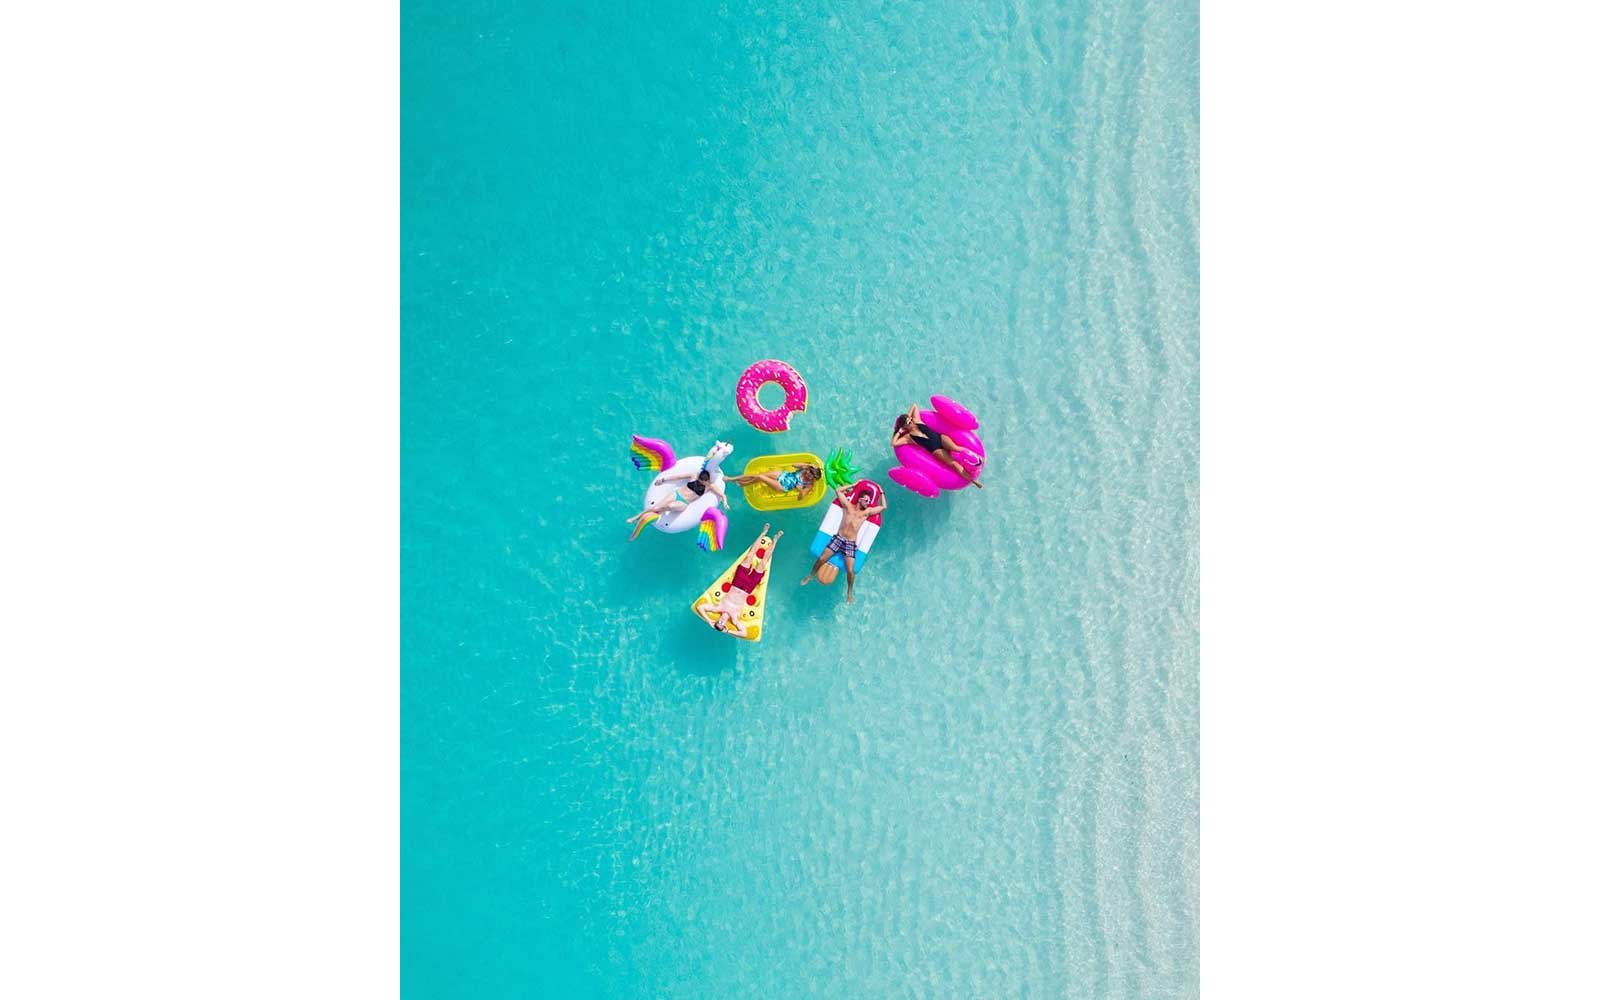 Floats in the Turks & Caicos